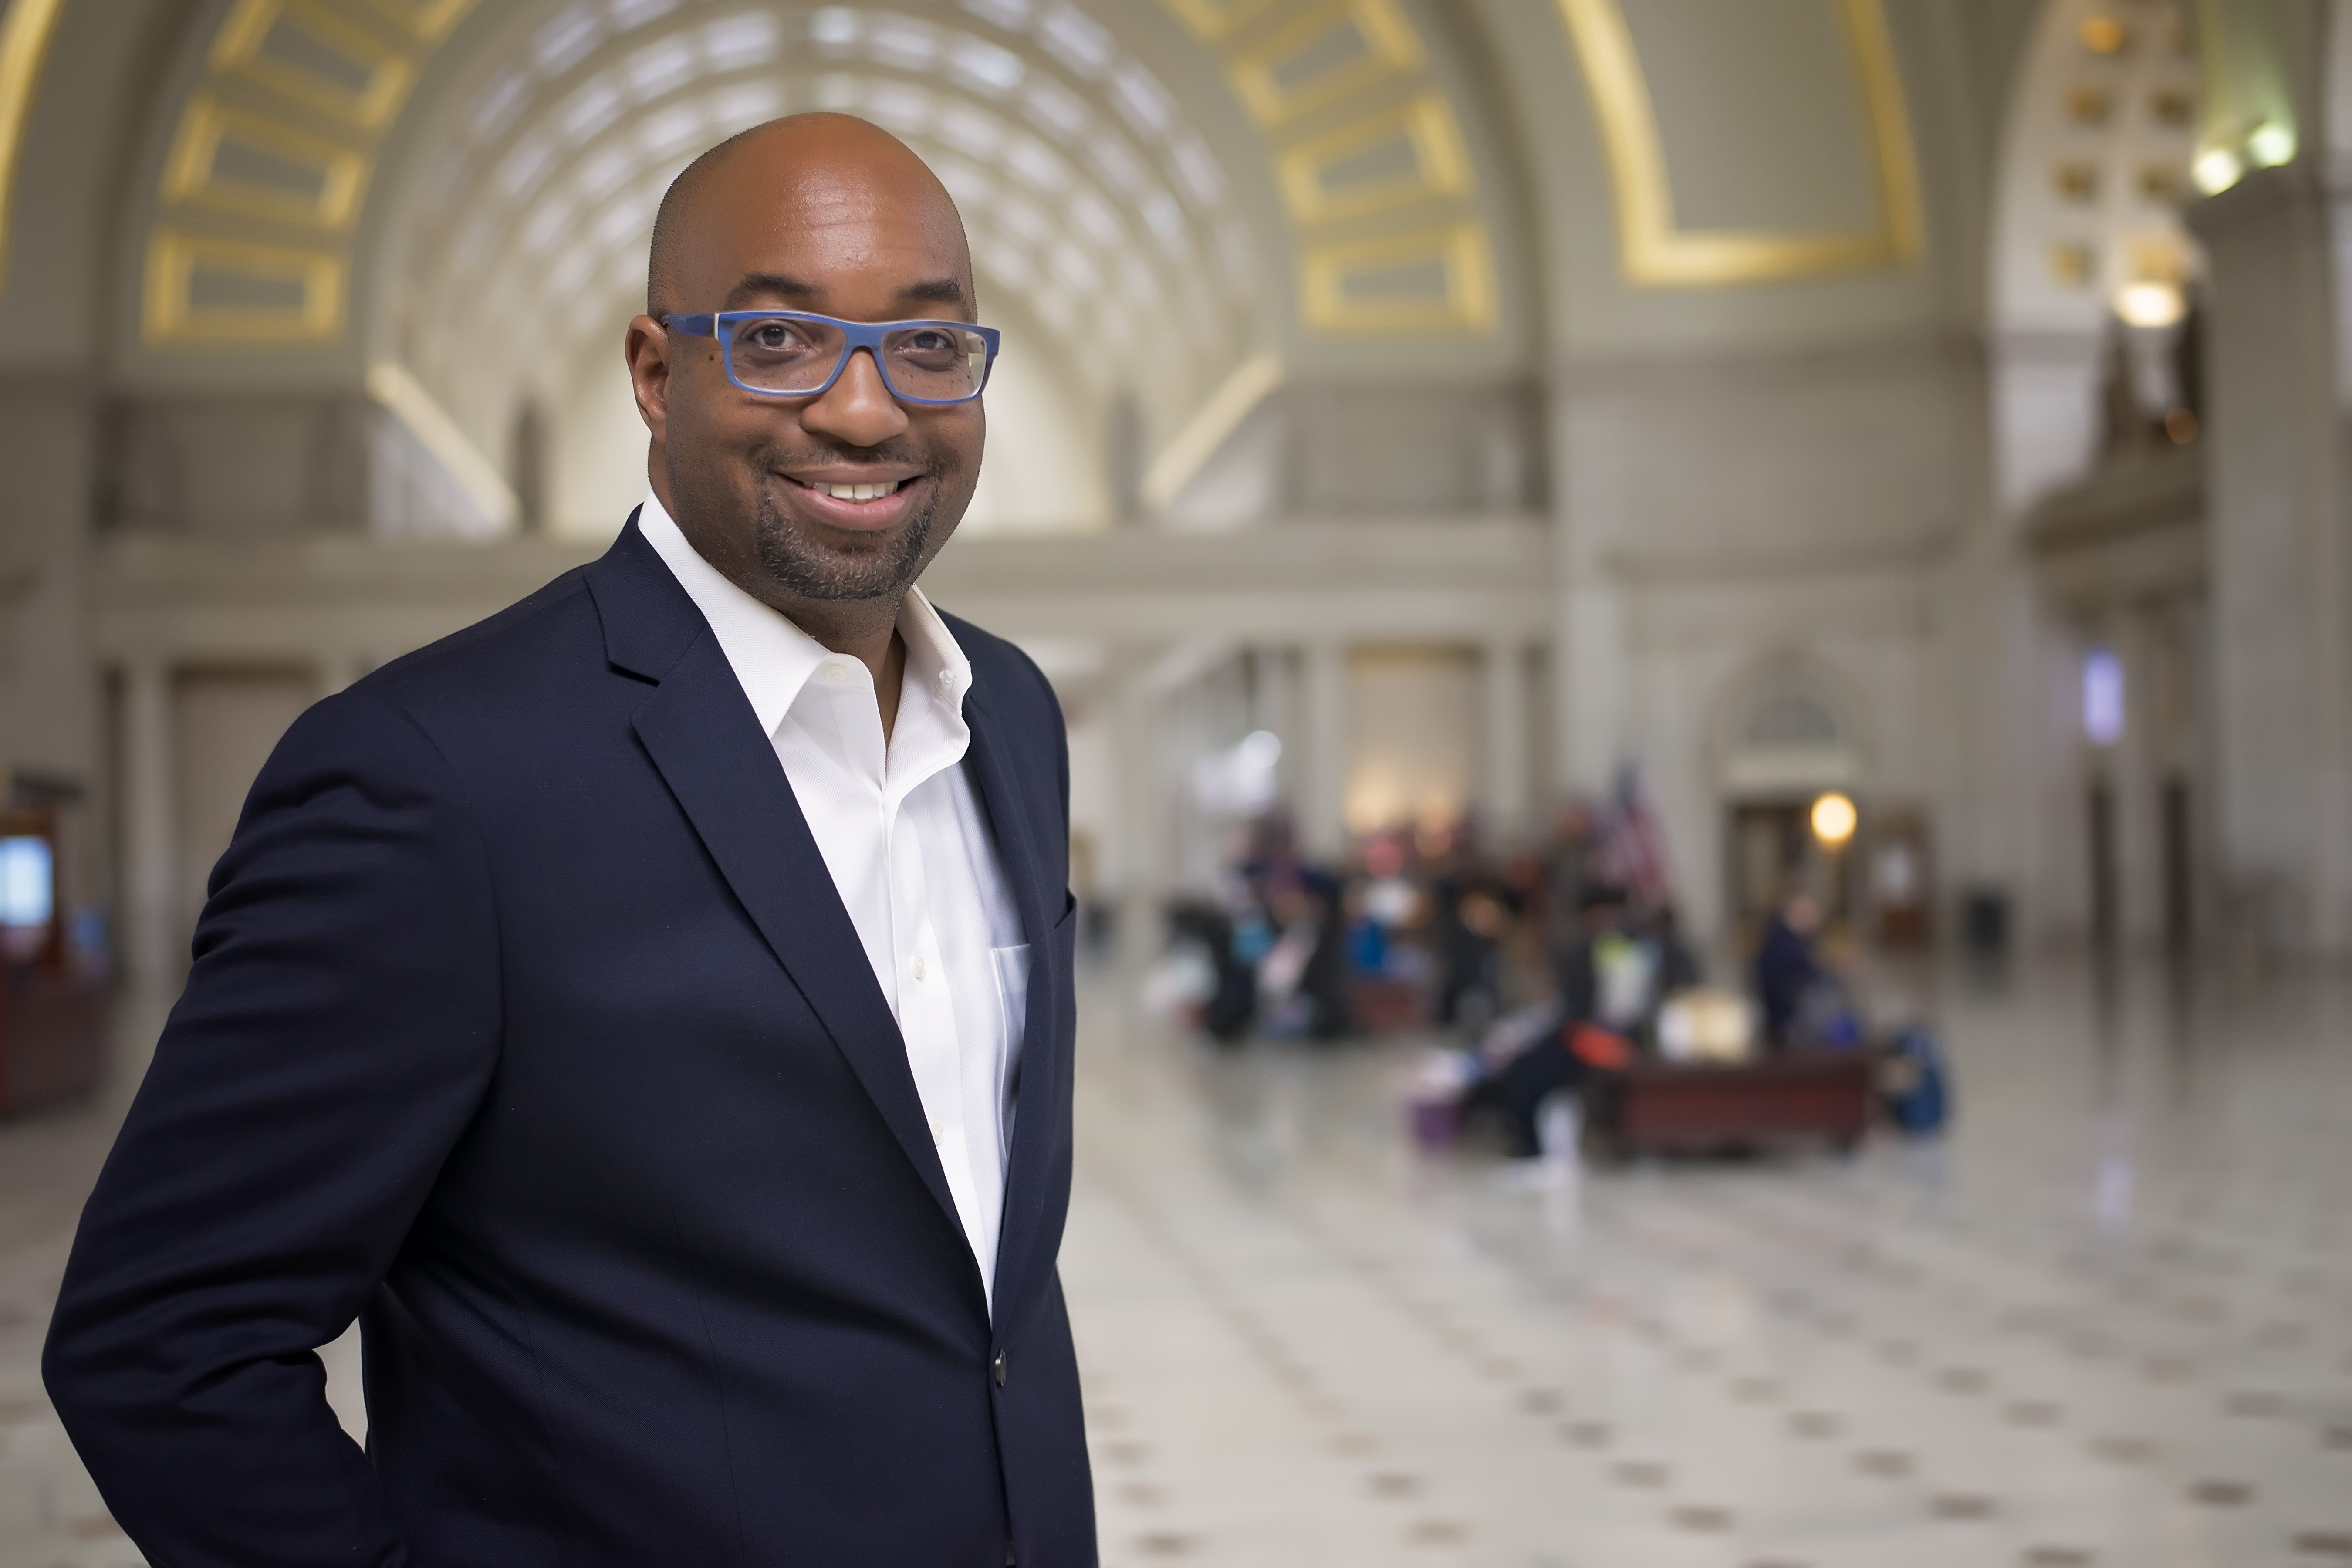 Meet author Kwame Alexander